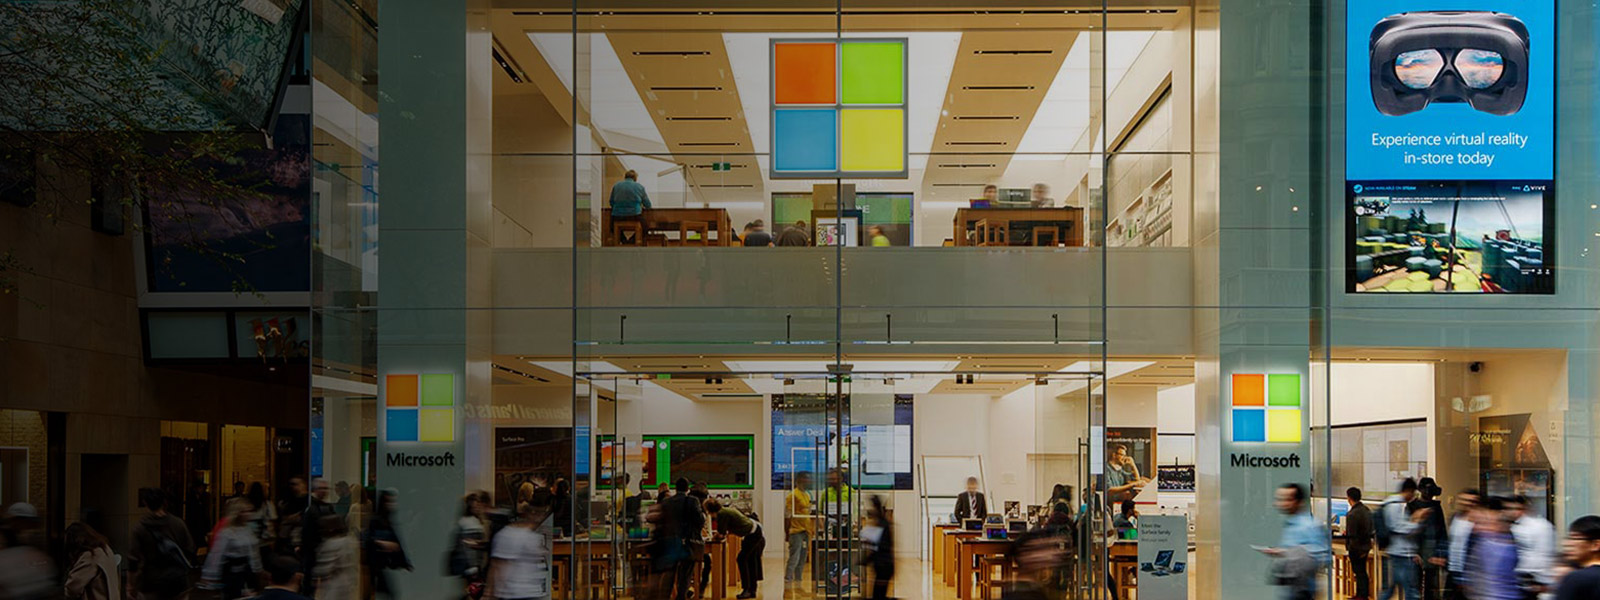 Microsoft Stores – Find a Microsoft retail location